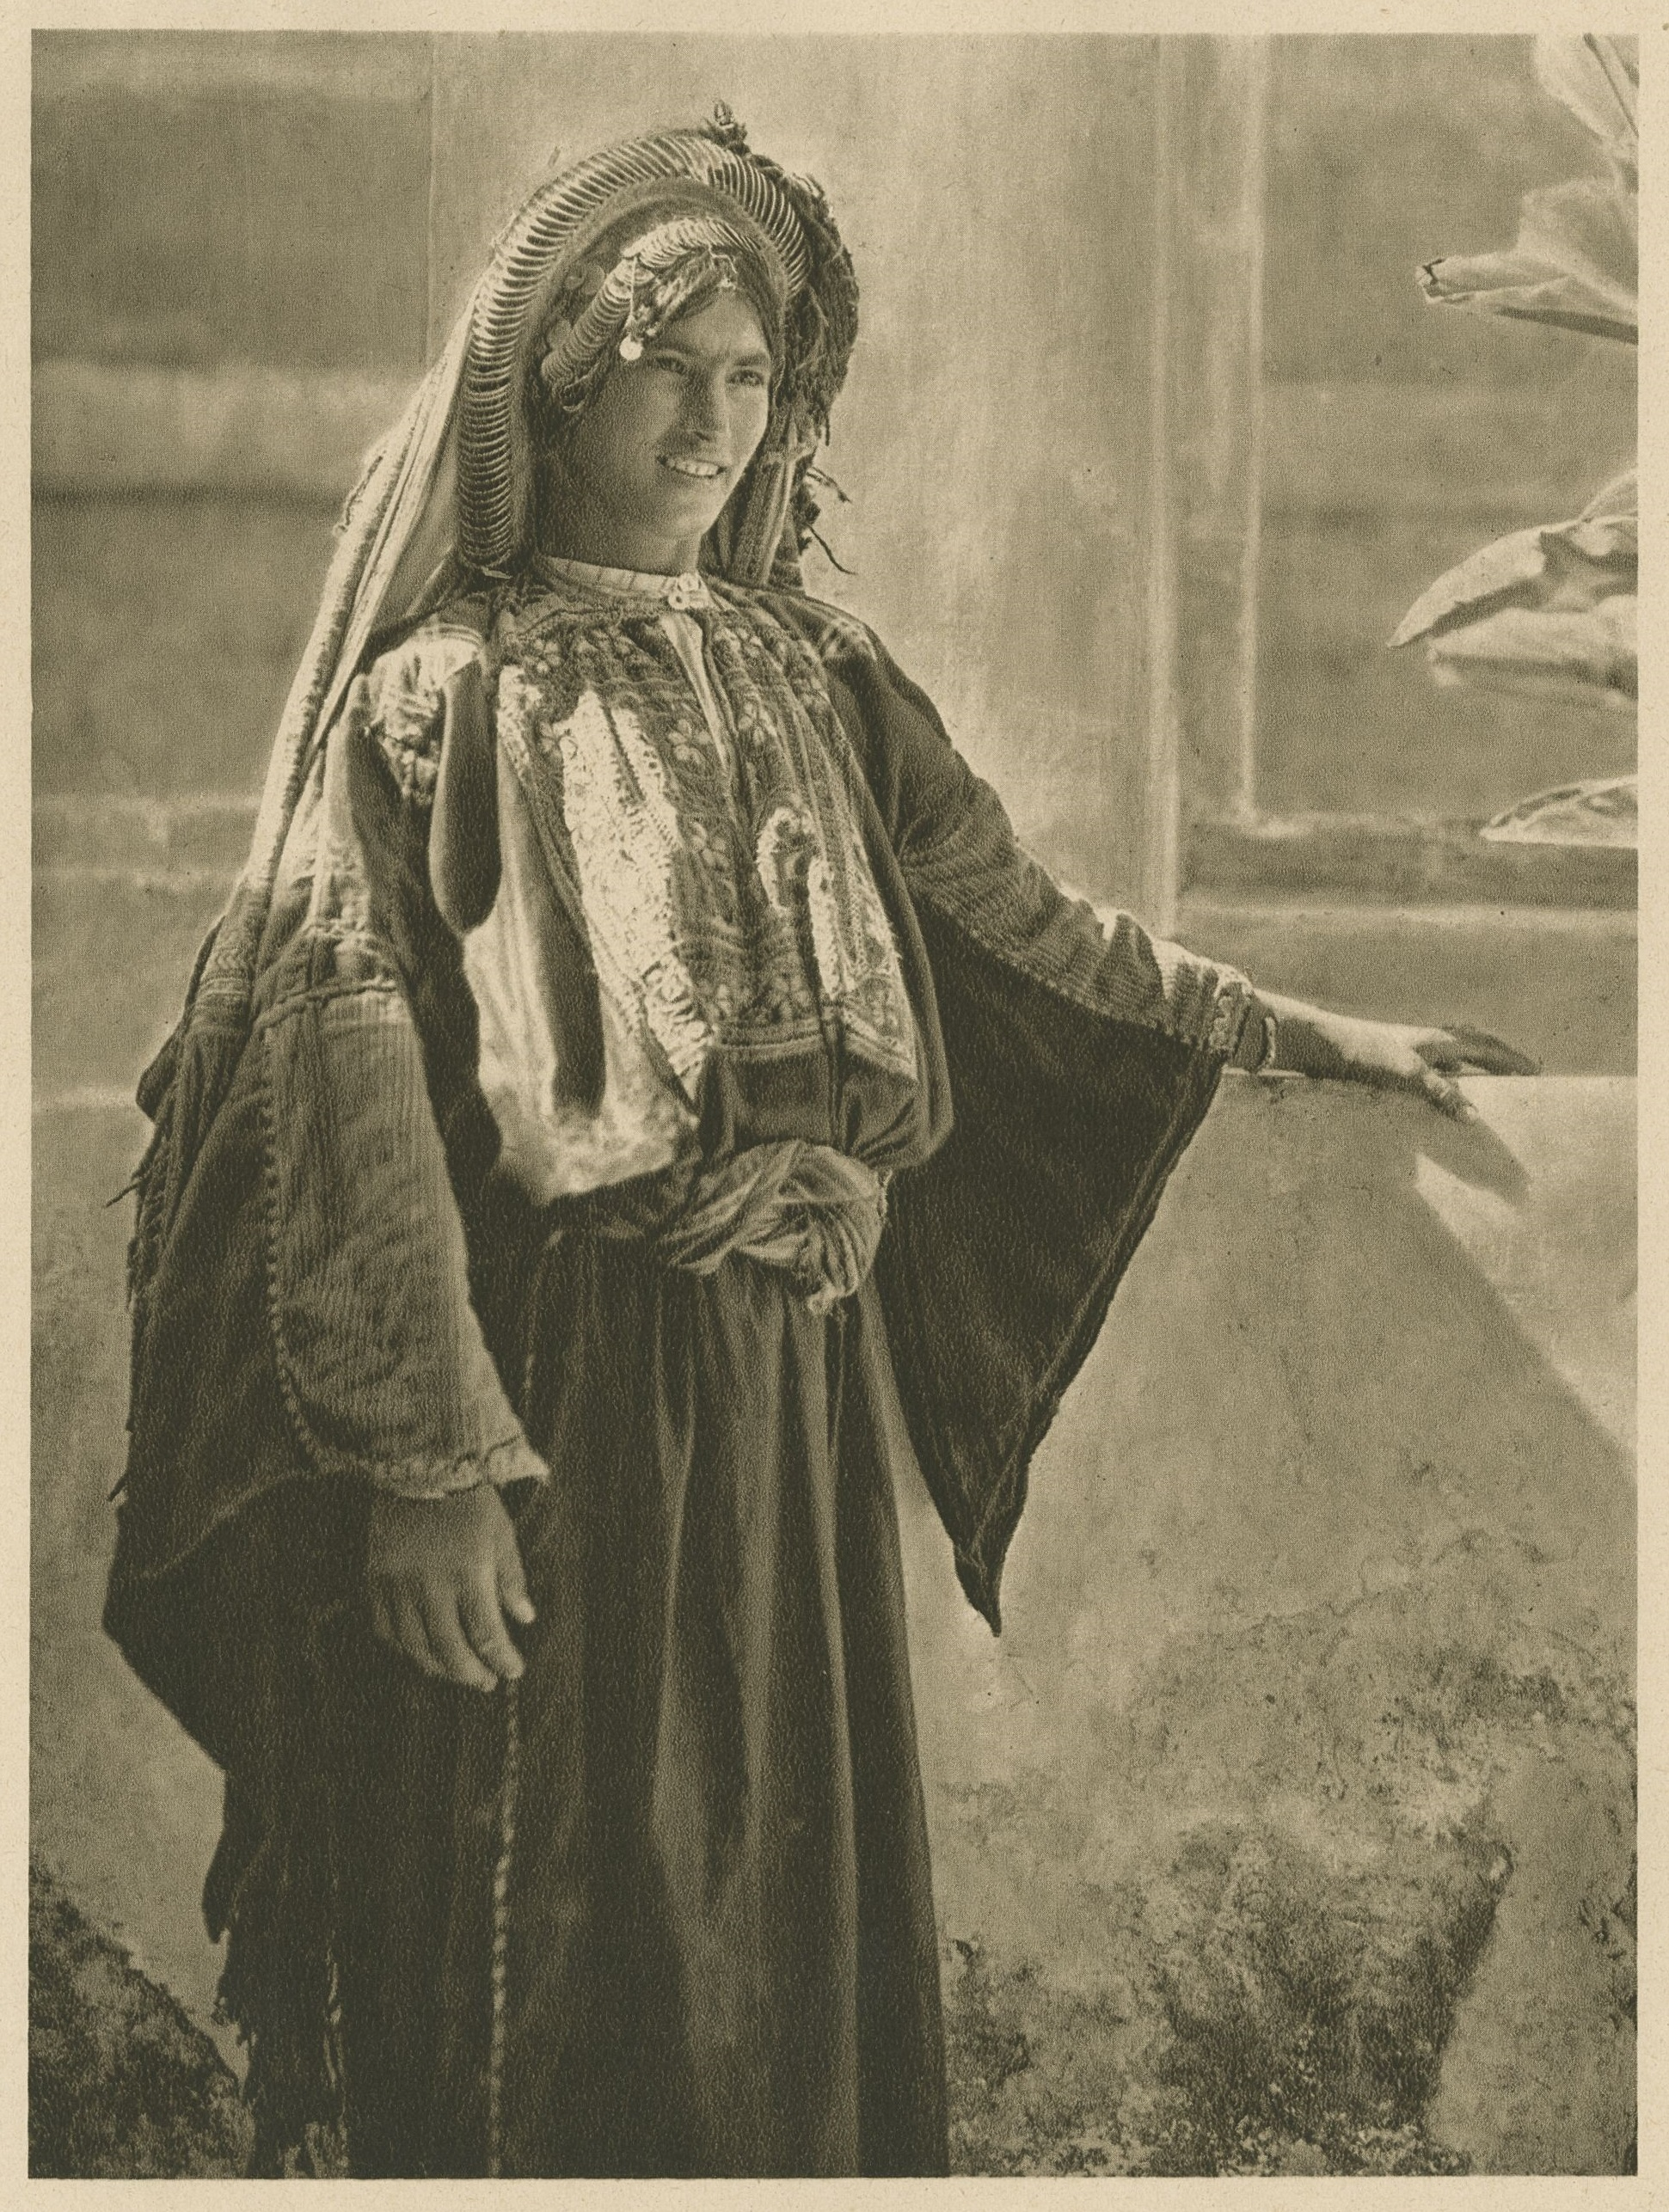 Woman wearing traditional Palestinian clothing